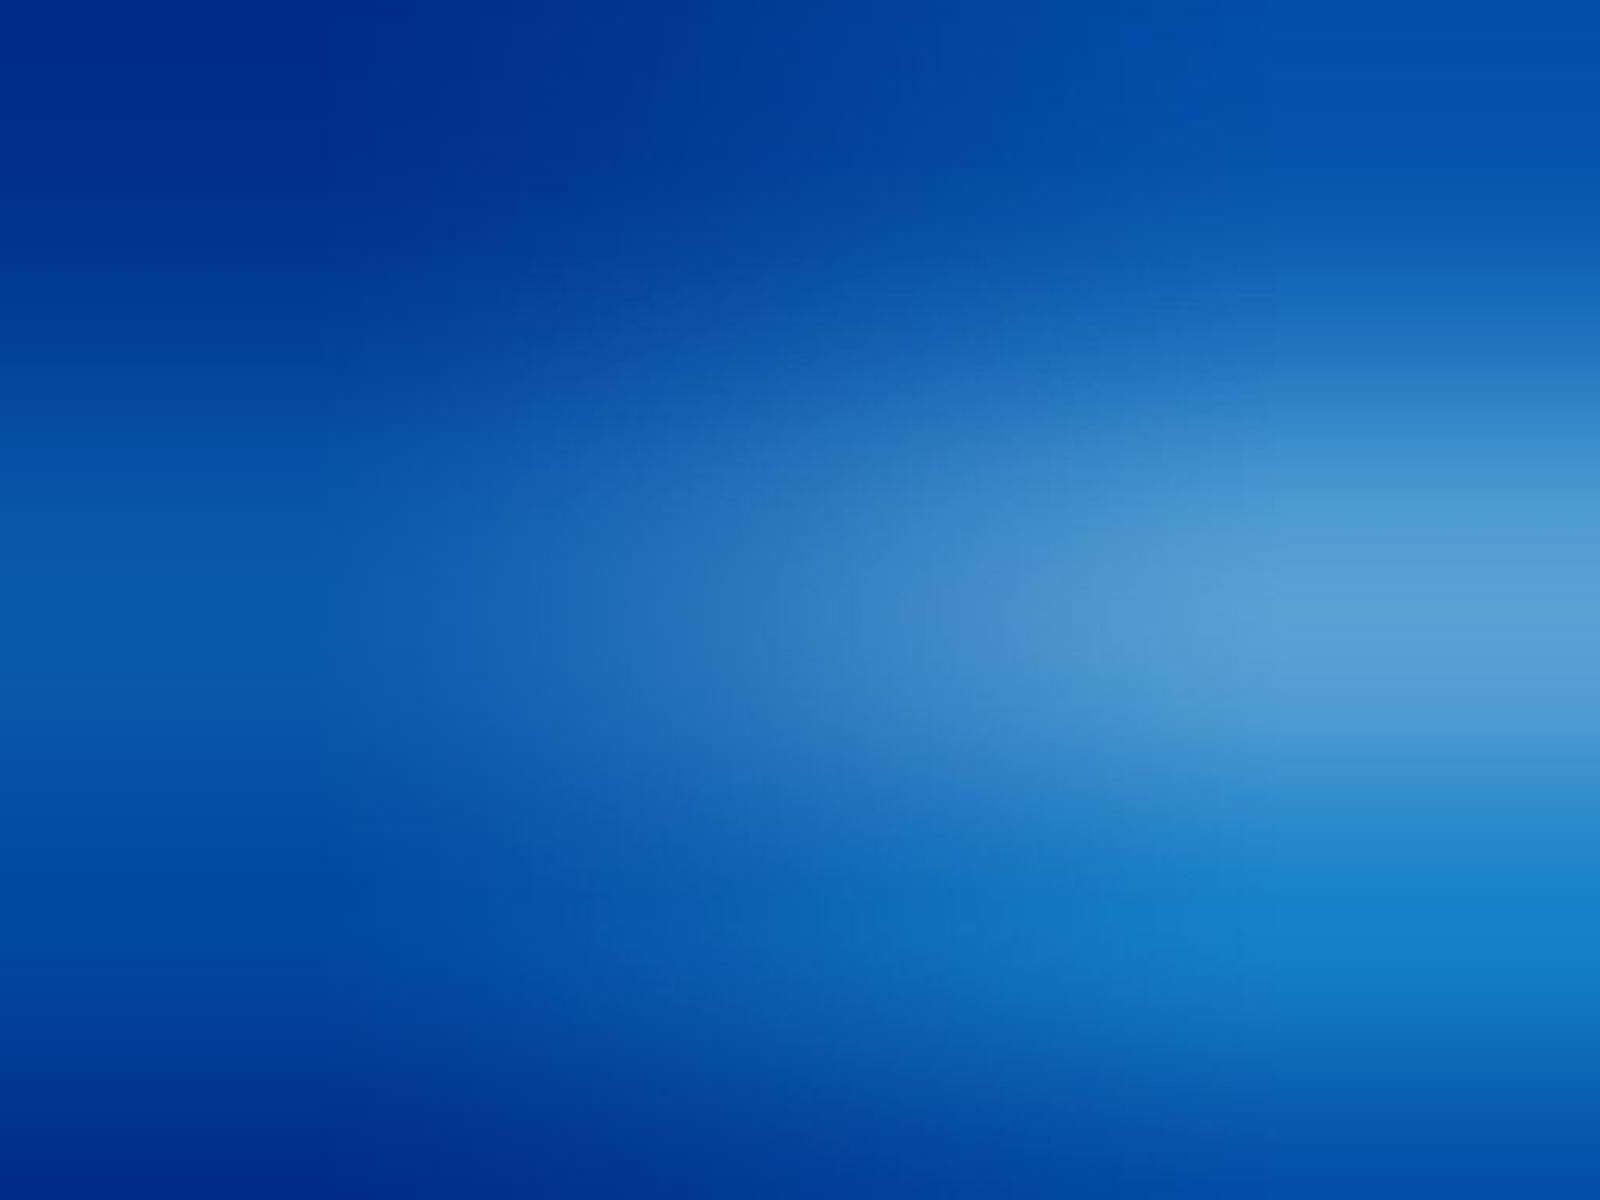 Download Plain Blue Background For Free